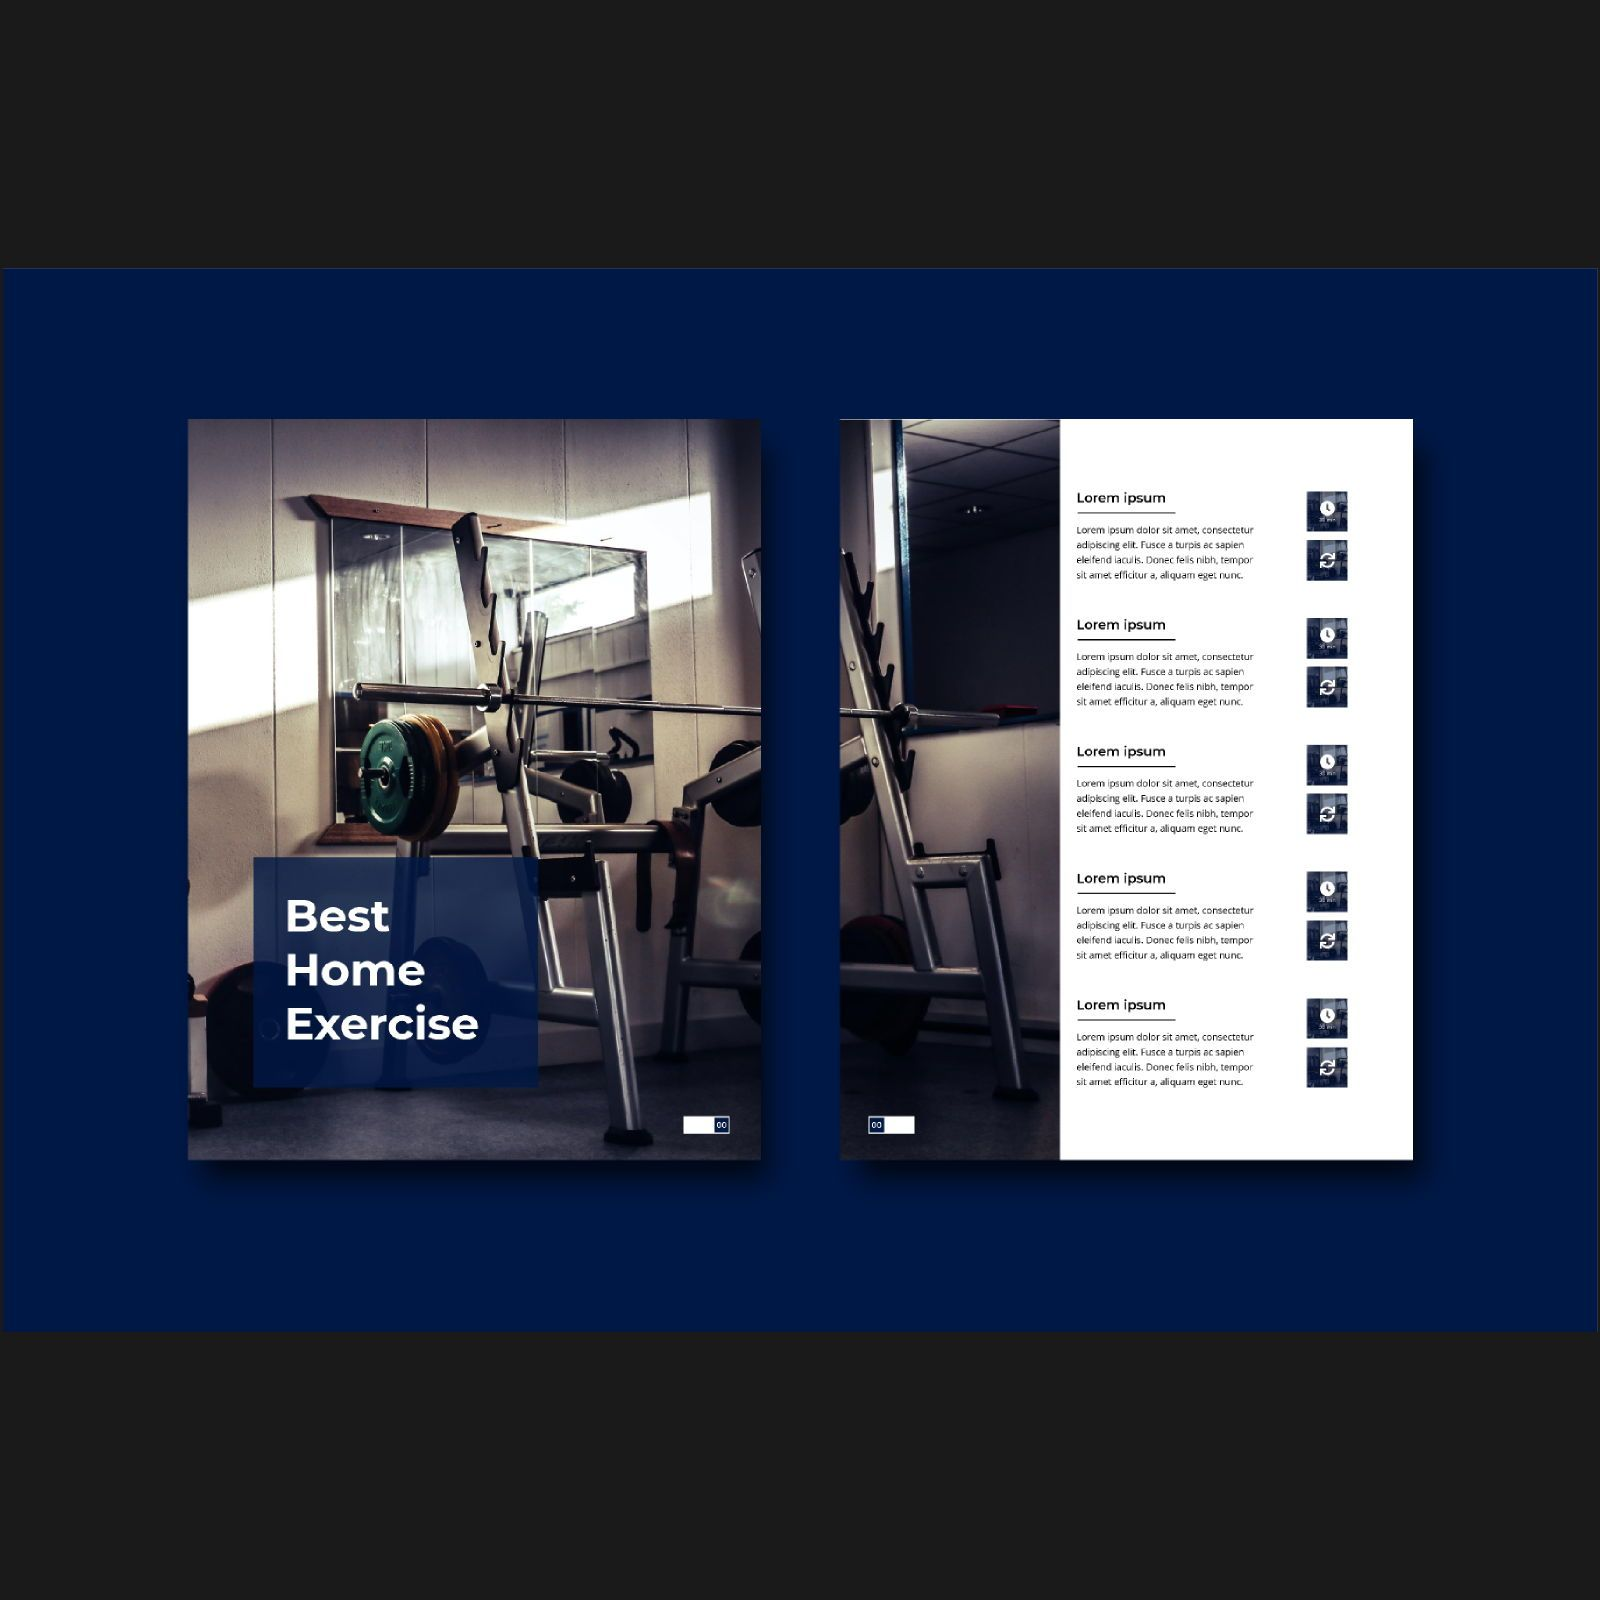 Stay healthy at home fitness ebook template, Slide 3, 08480, Infographics — PoweredTemplate.com